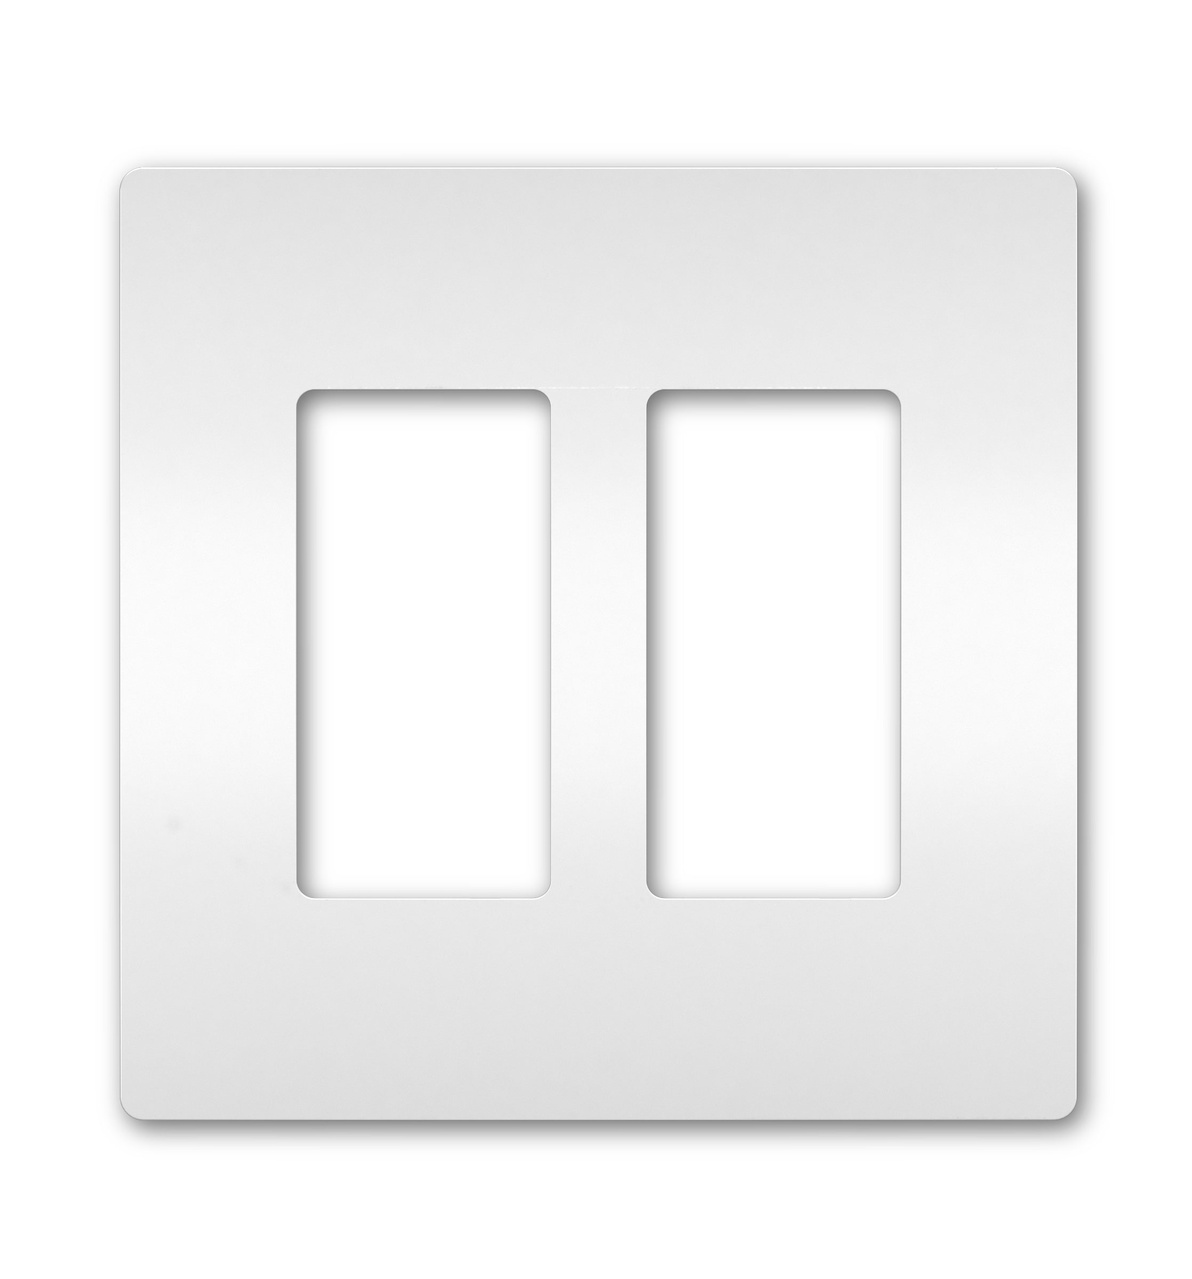 Two-Gang Screwless Wall Plate, White